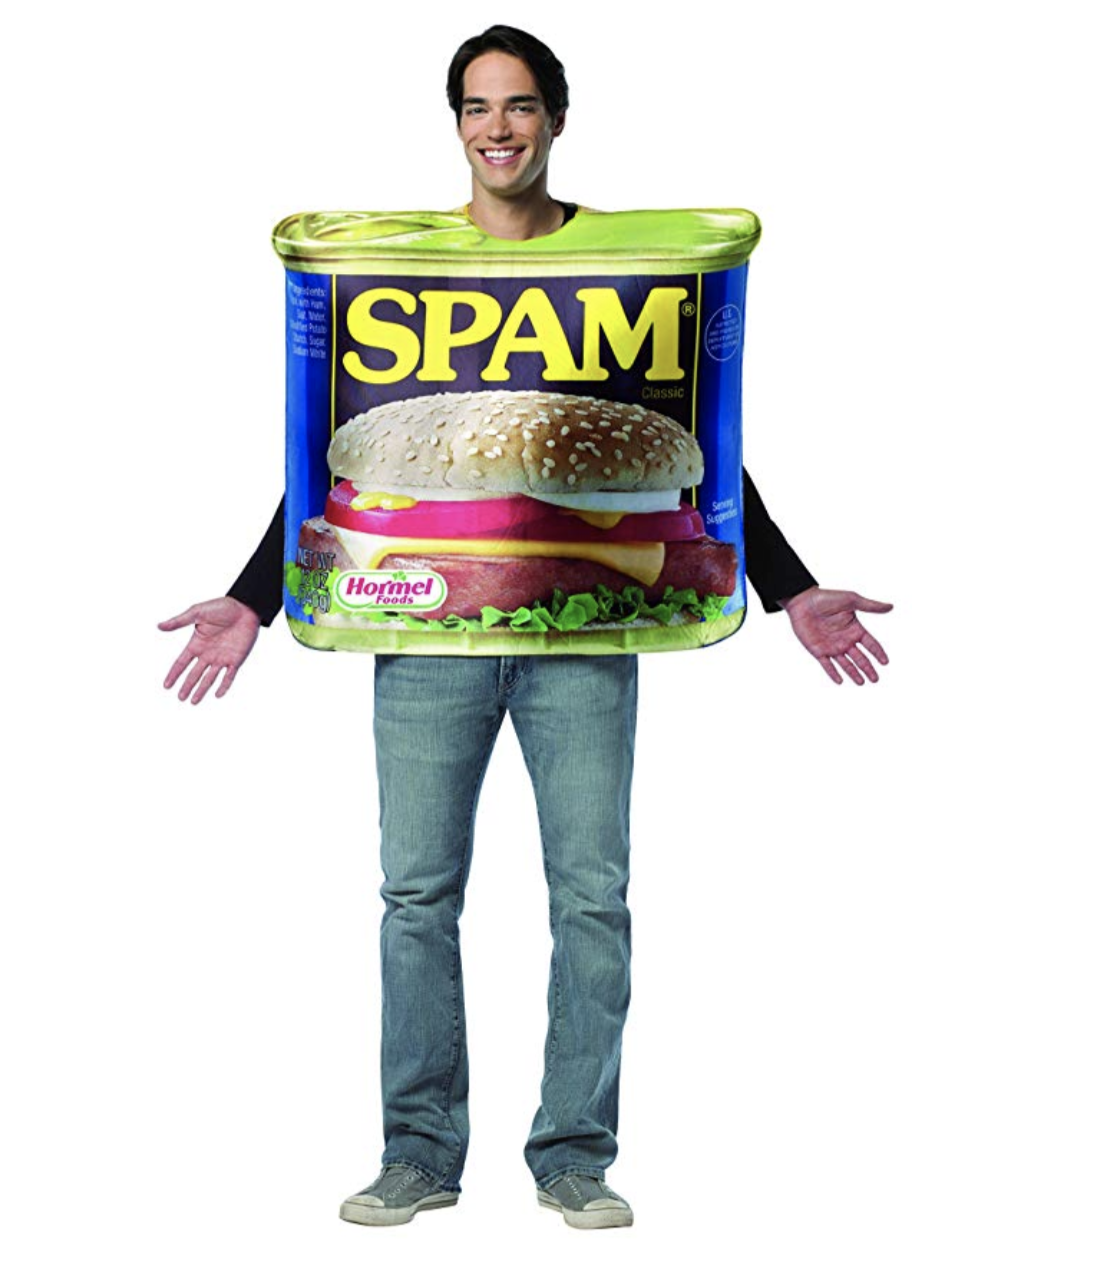 Spam Has An Entire Line Of Merch So You Can Literally Wear Your Love For The Canned Meat On Your Sleeve